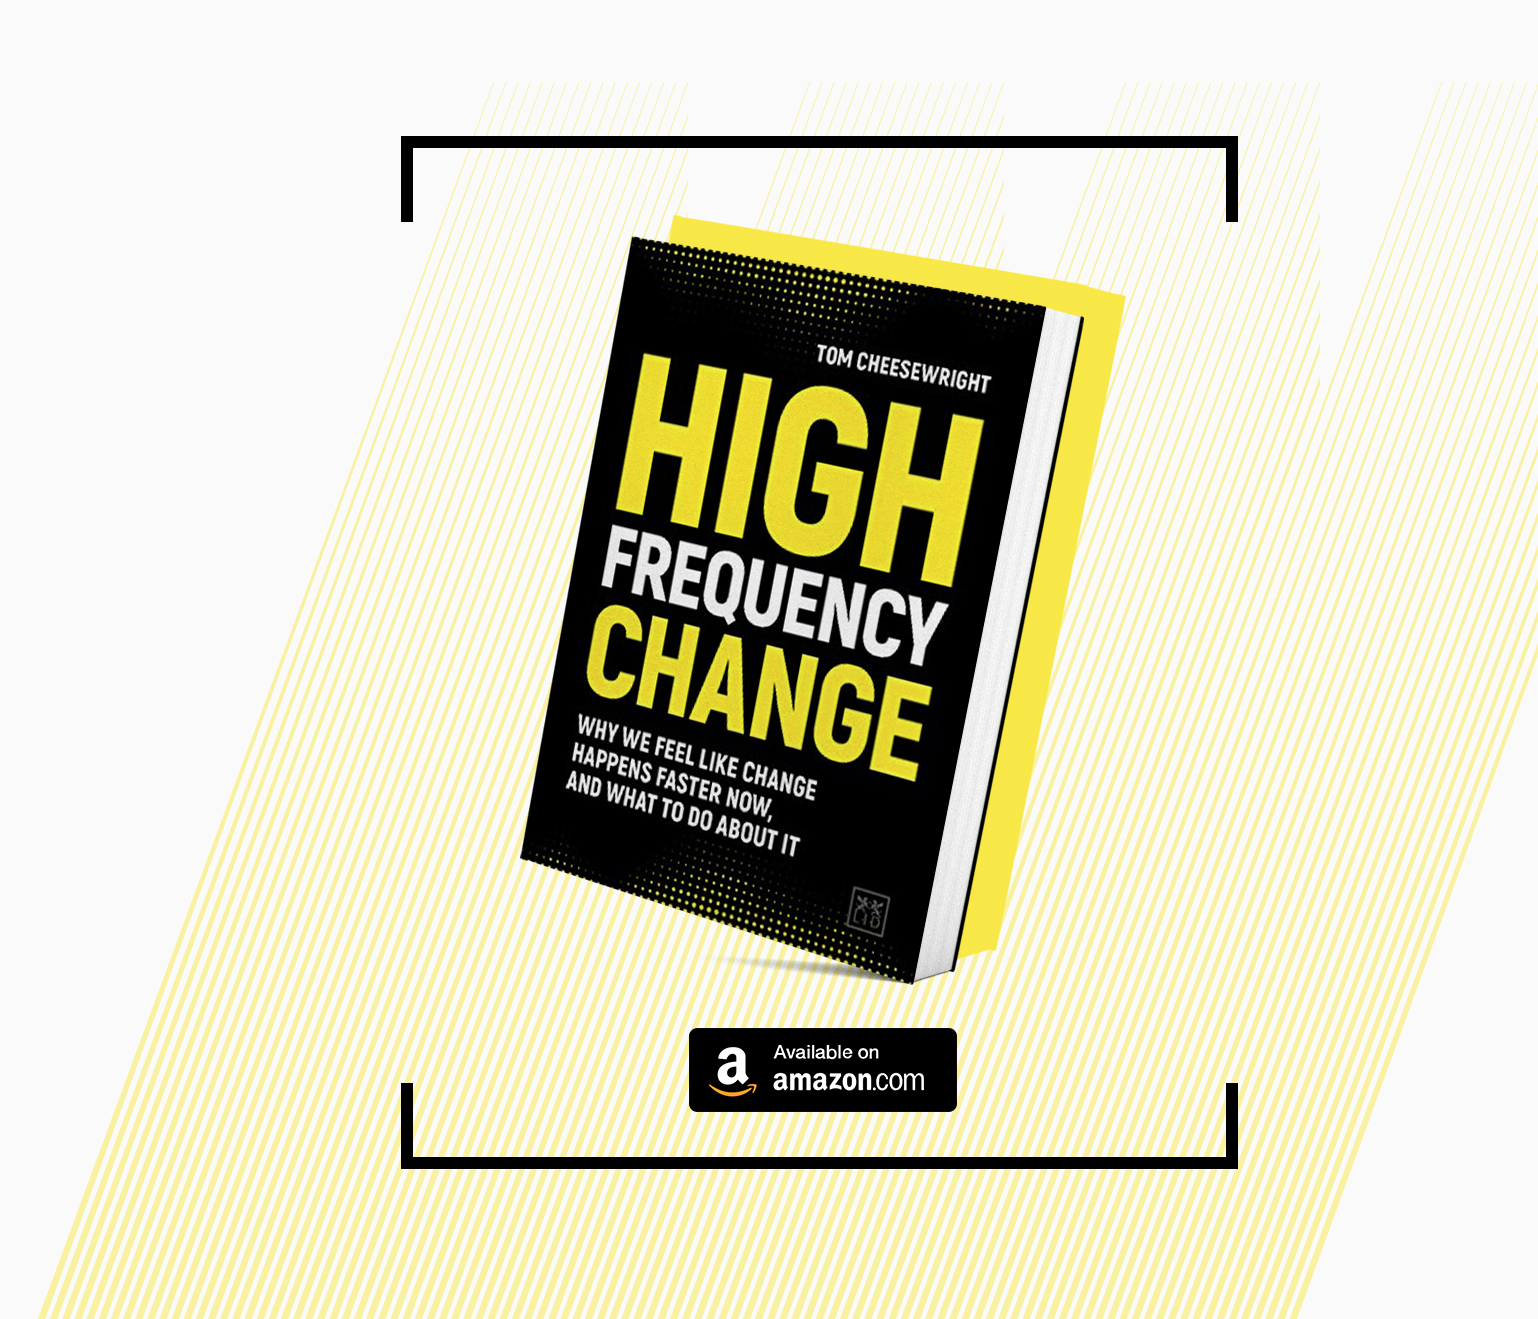 high frequency change by tom cheesewright - cover image